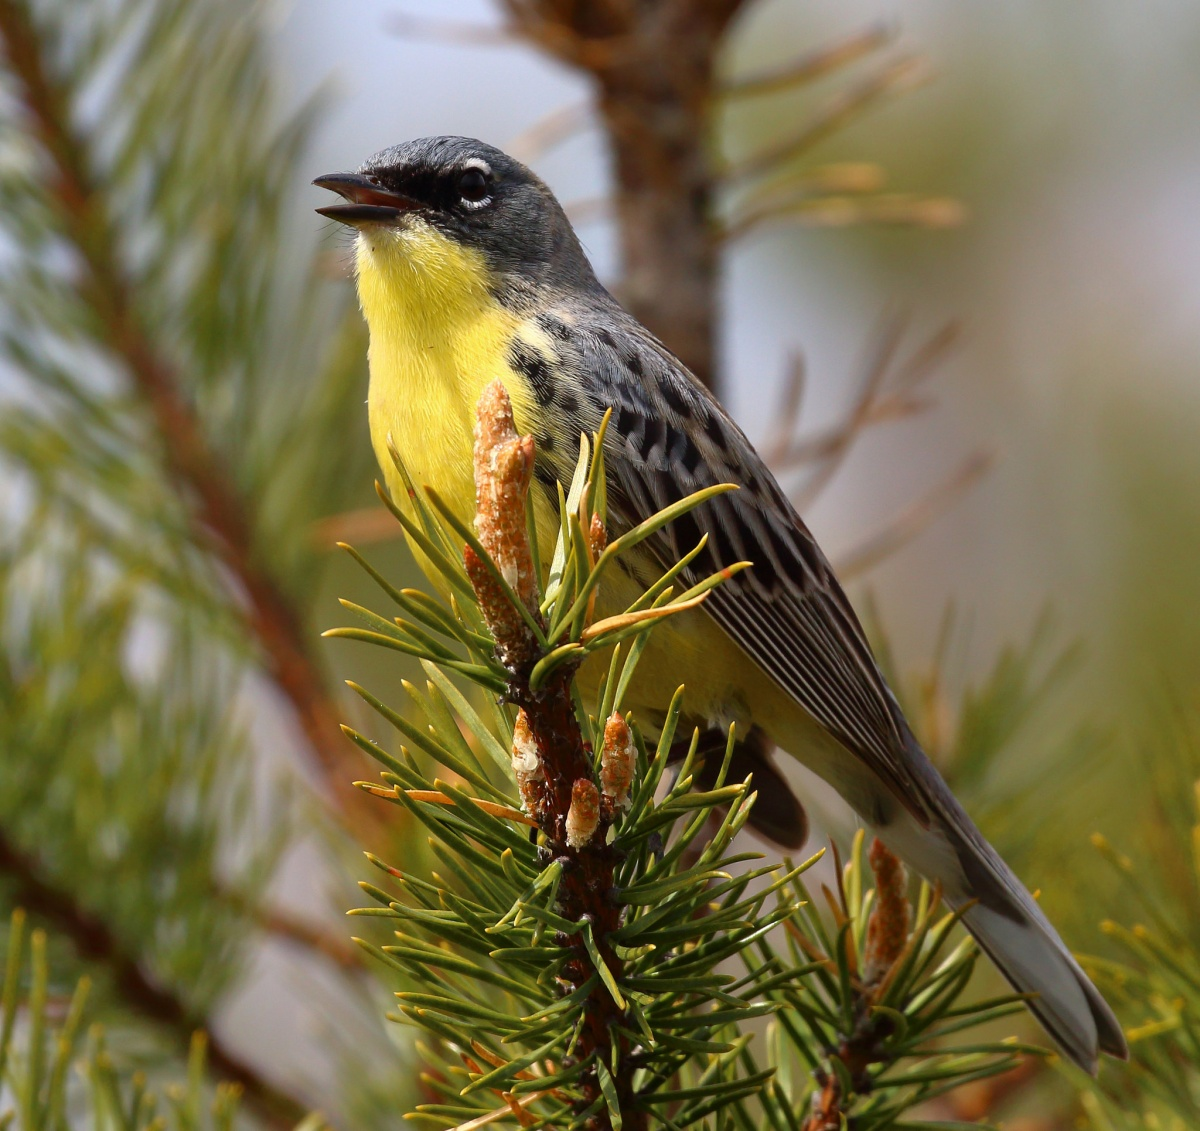 A yellow and grey bird sits on a brown and green bristled tree branch.